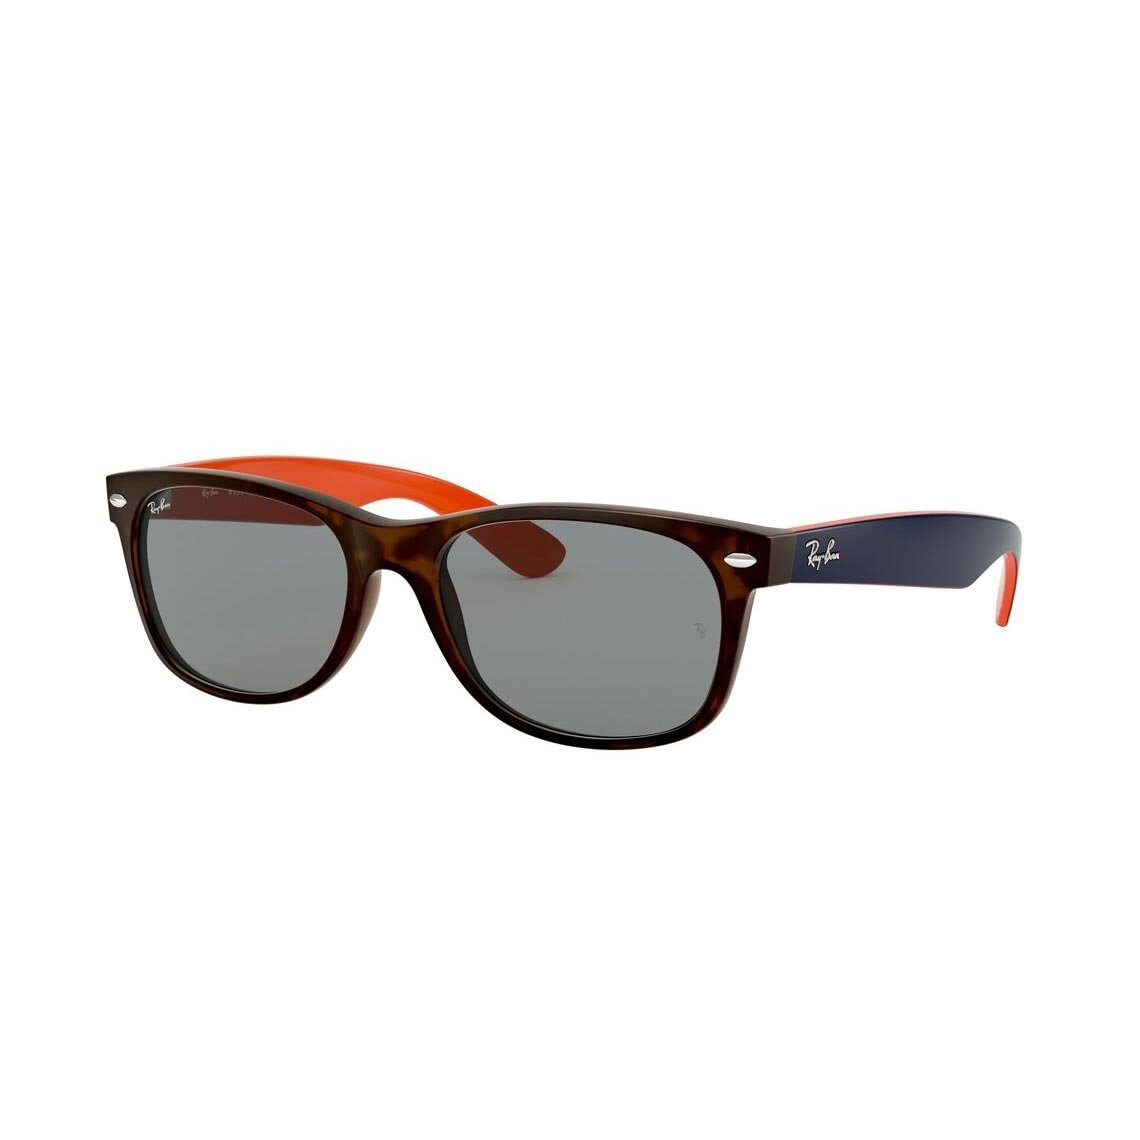 Ray-Ban New Wayfarer RB2132 6180R5 55